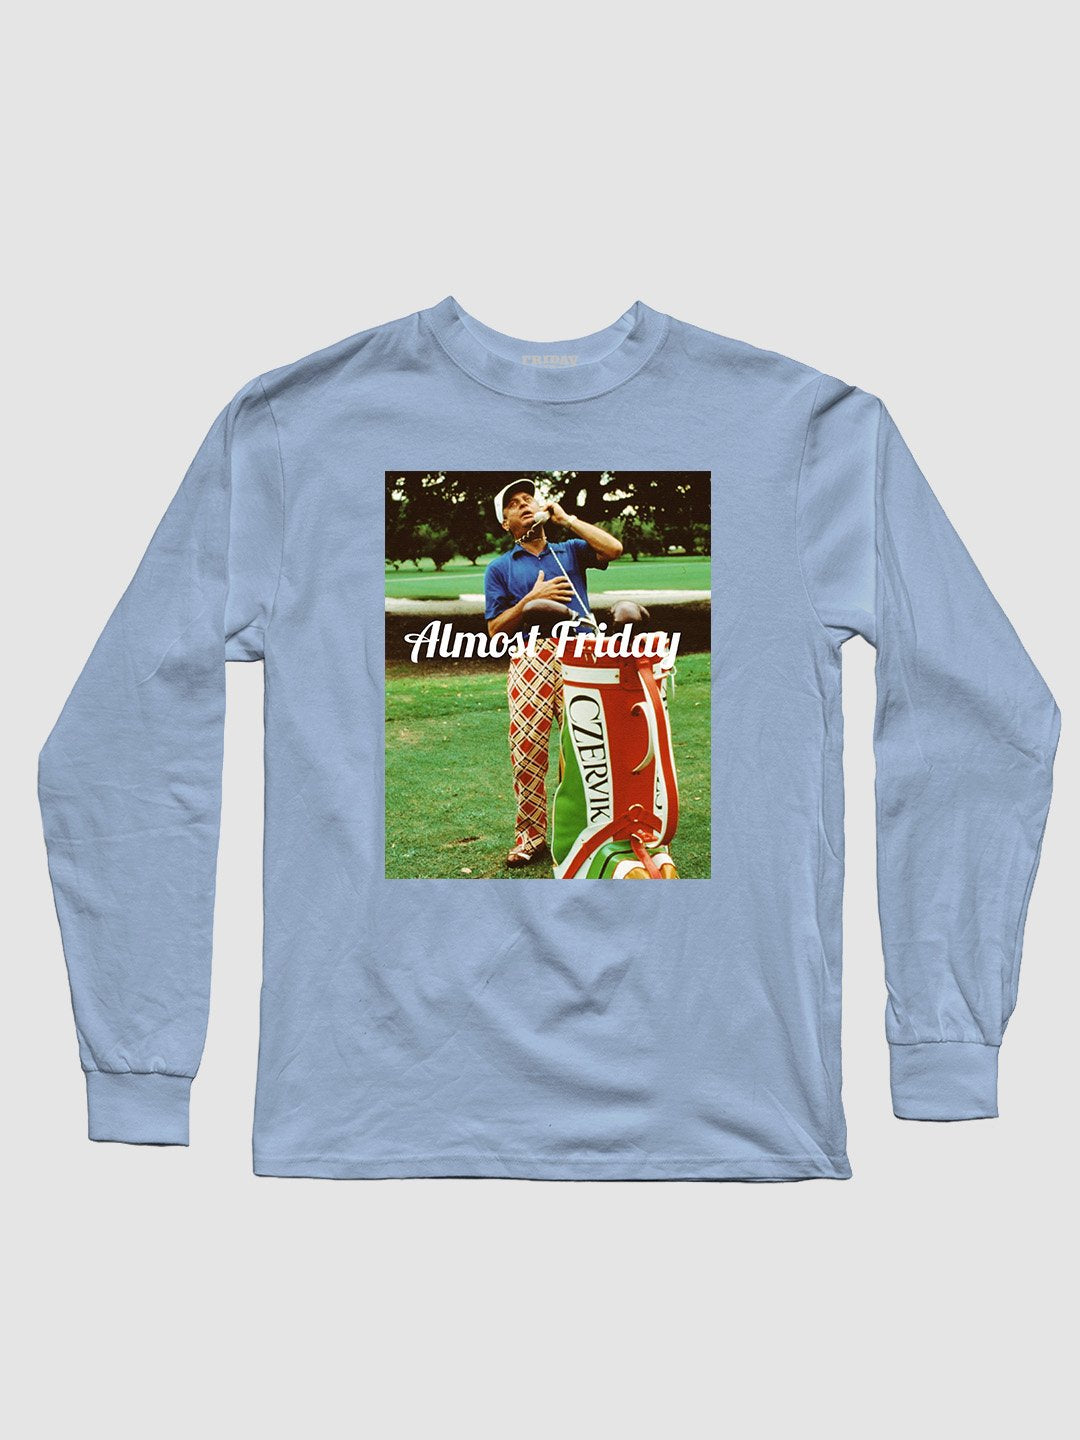 Almost Friday Phone Long Sleeve